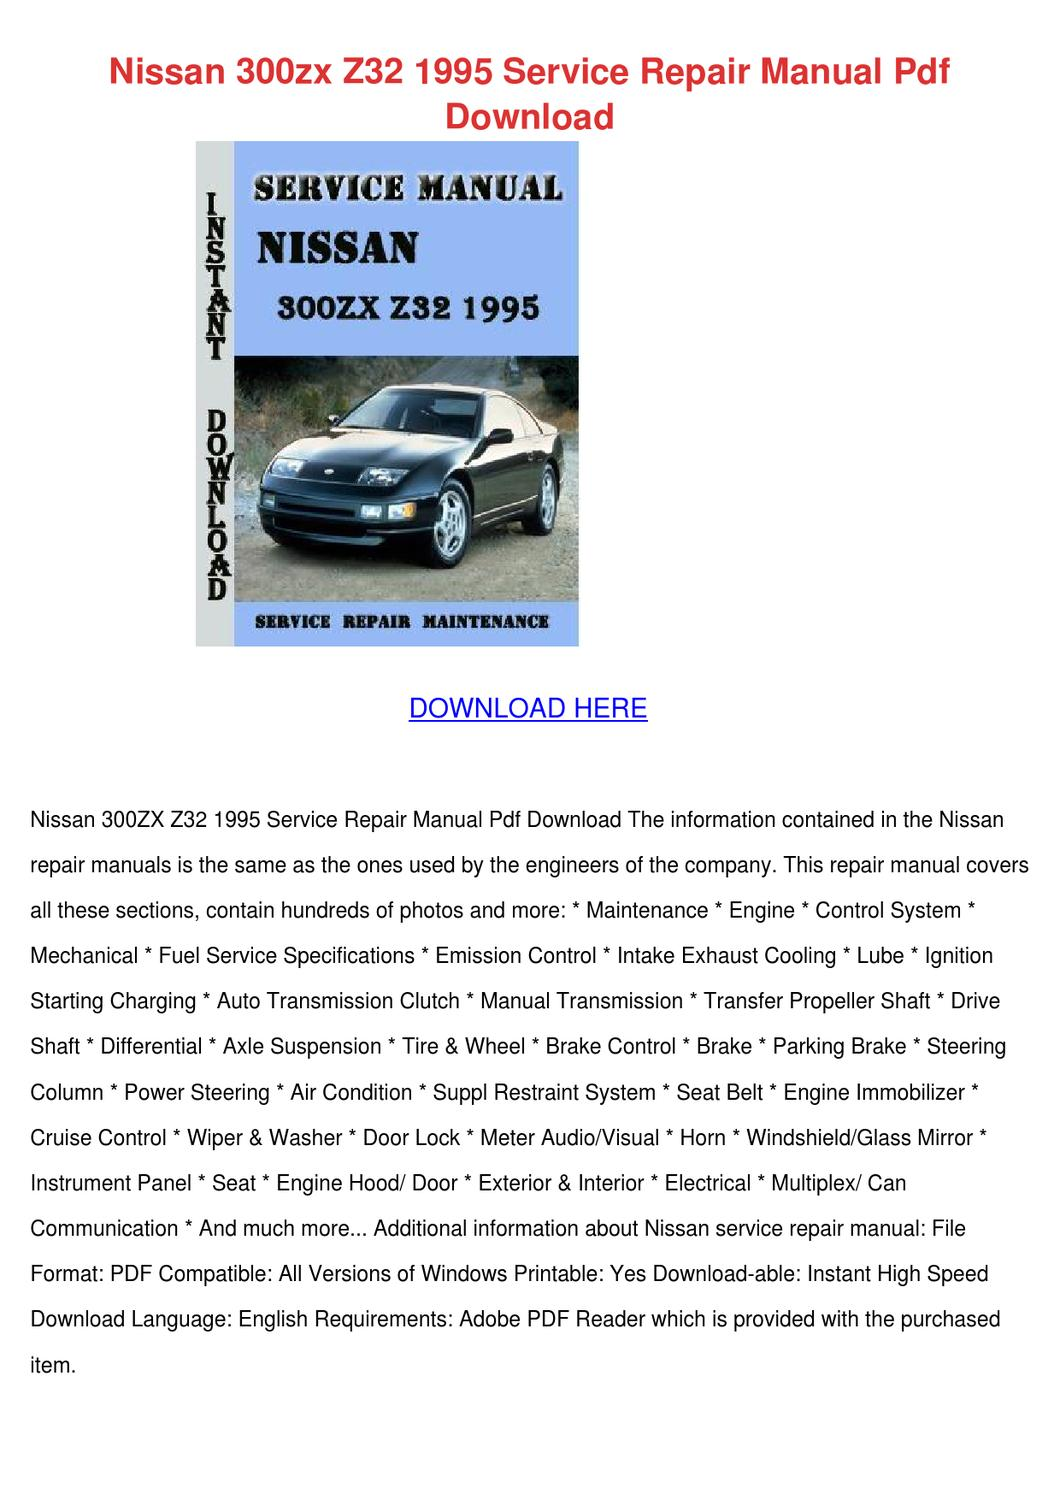 nissan 300zx z32 1995 service repair manual p by